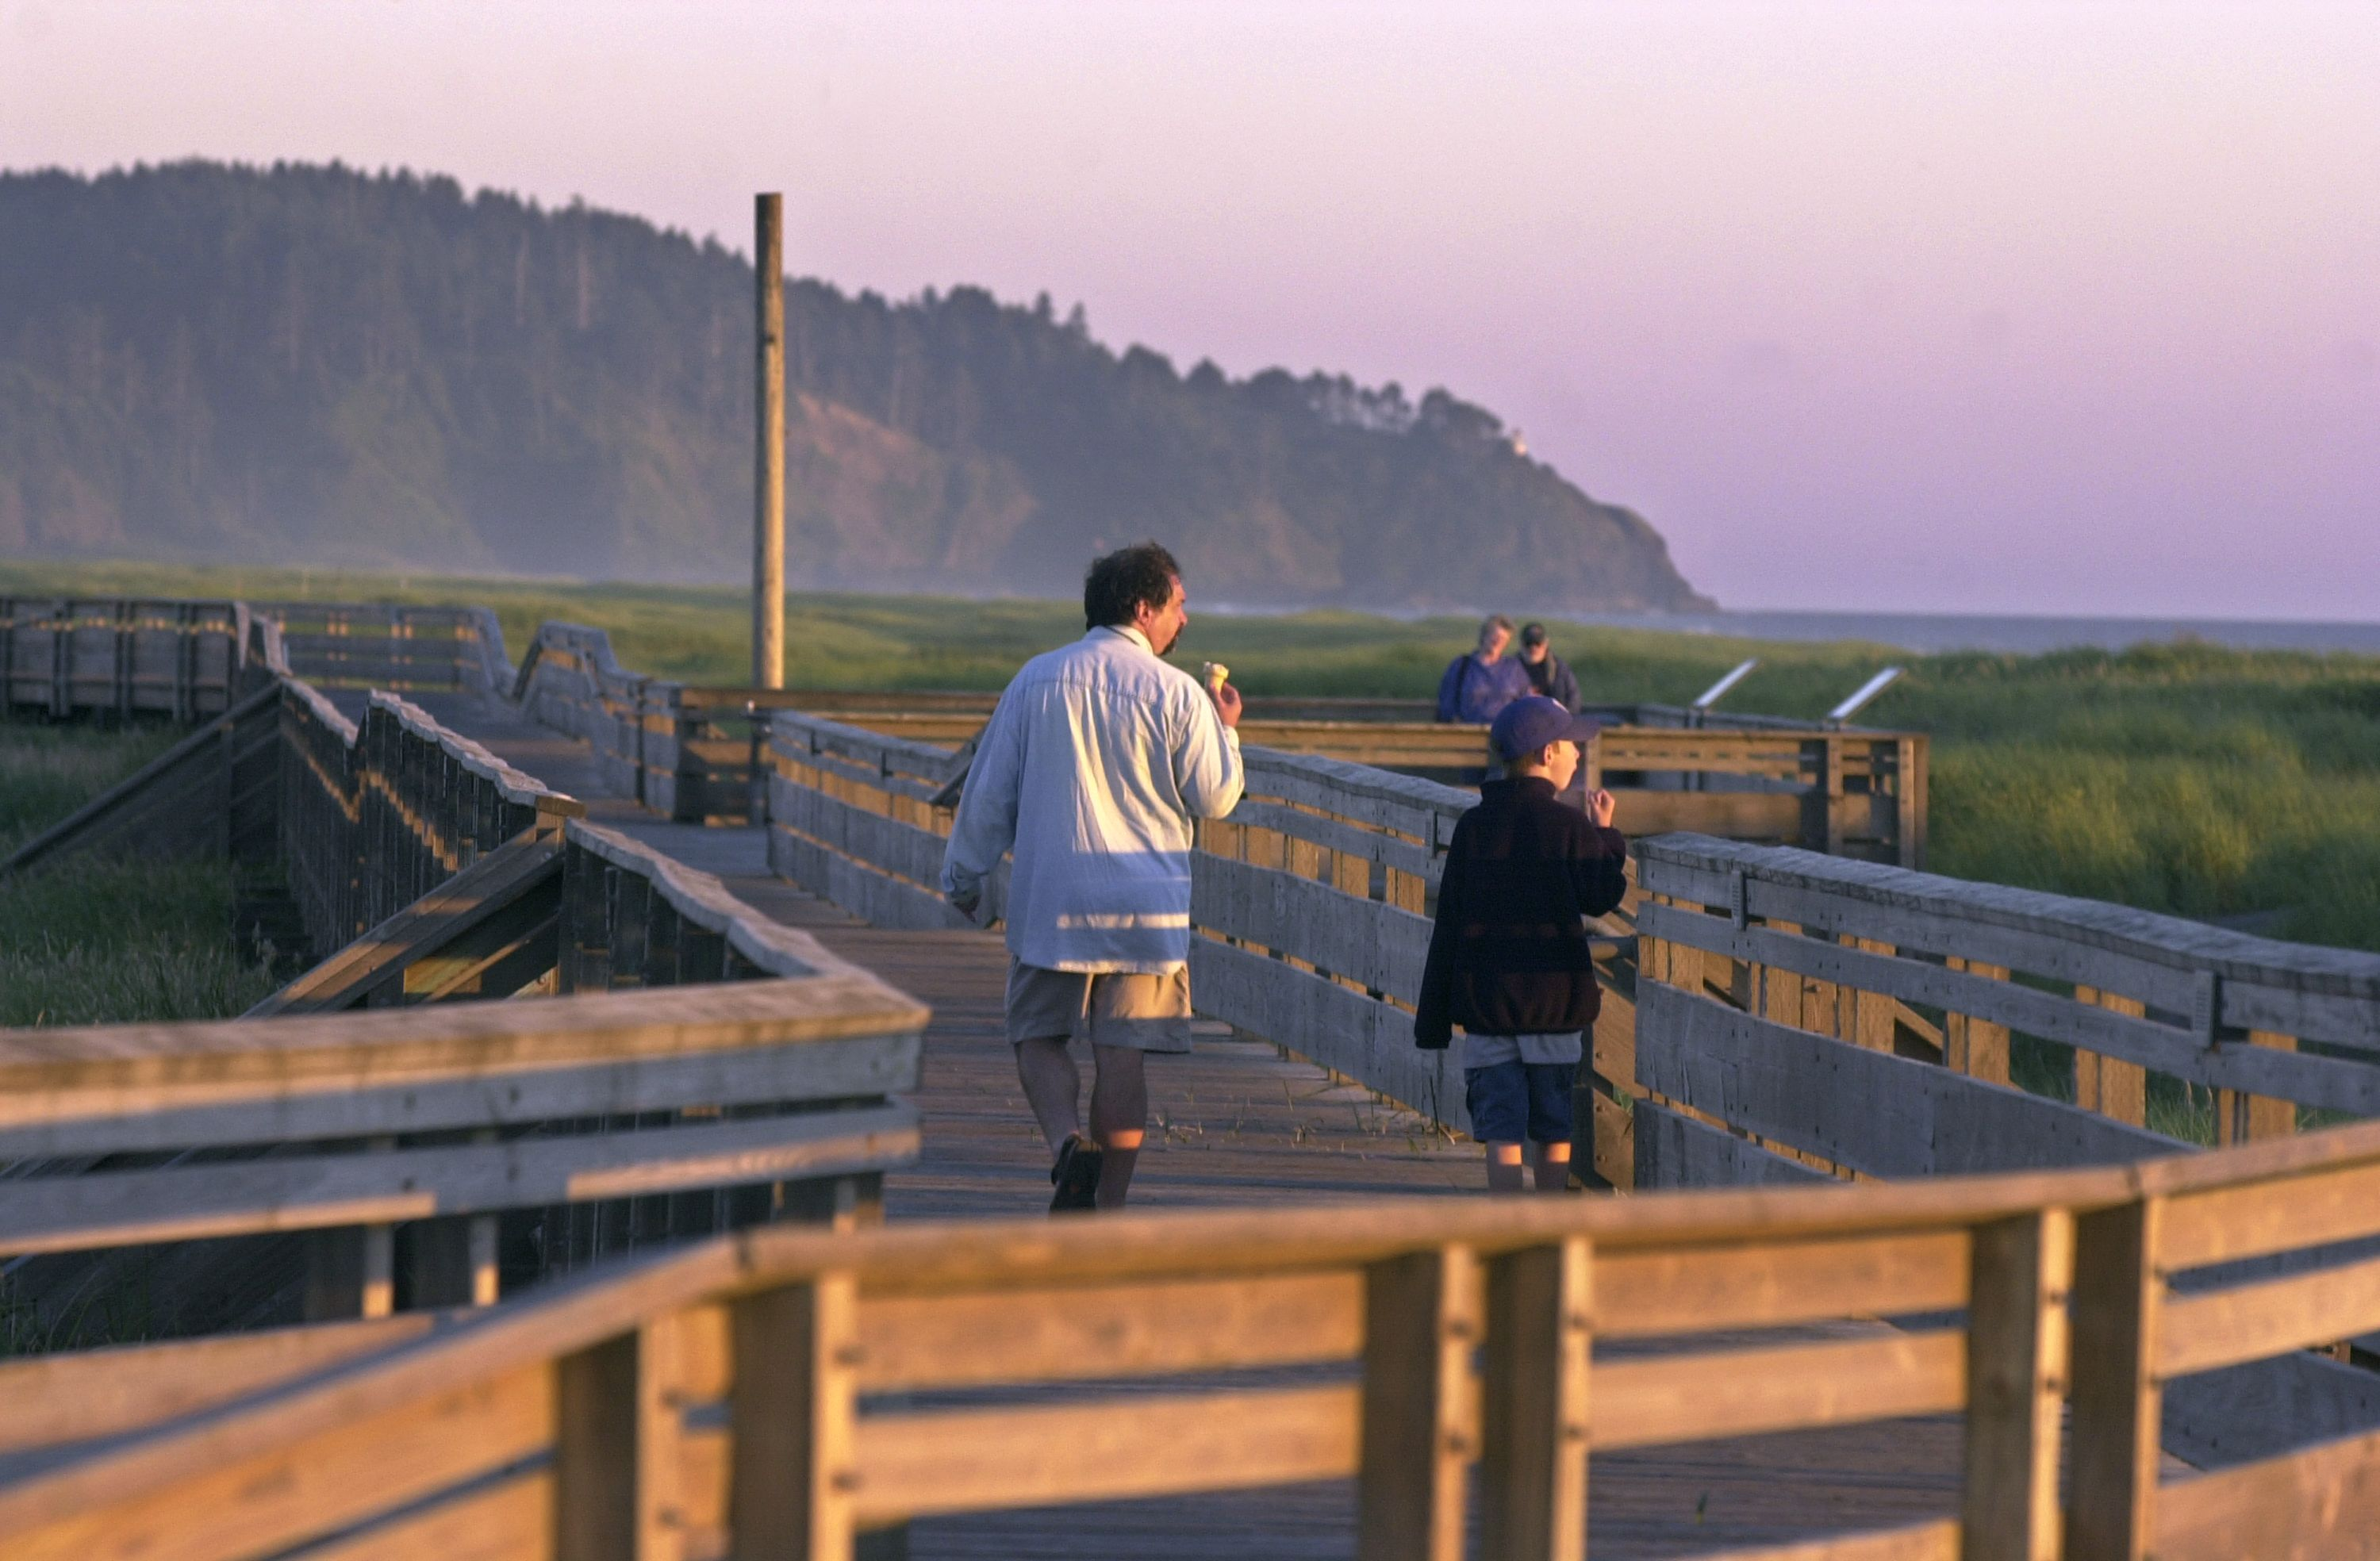 Walking on the Long Beach Boardwalk, photo courtesy of Long Beach Peninsula Visitors Bureau